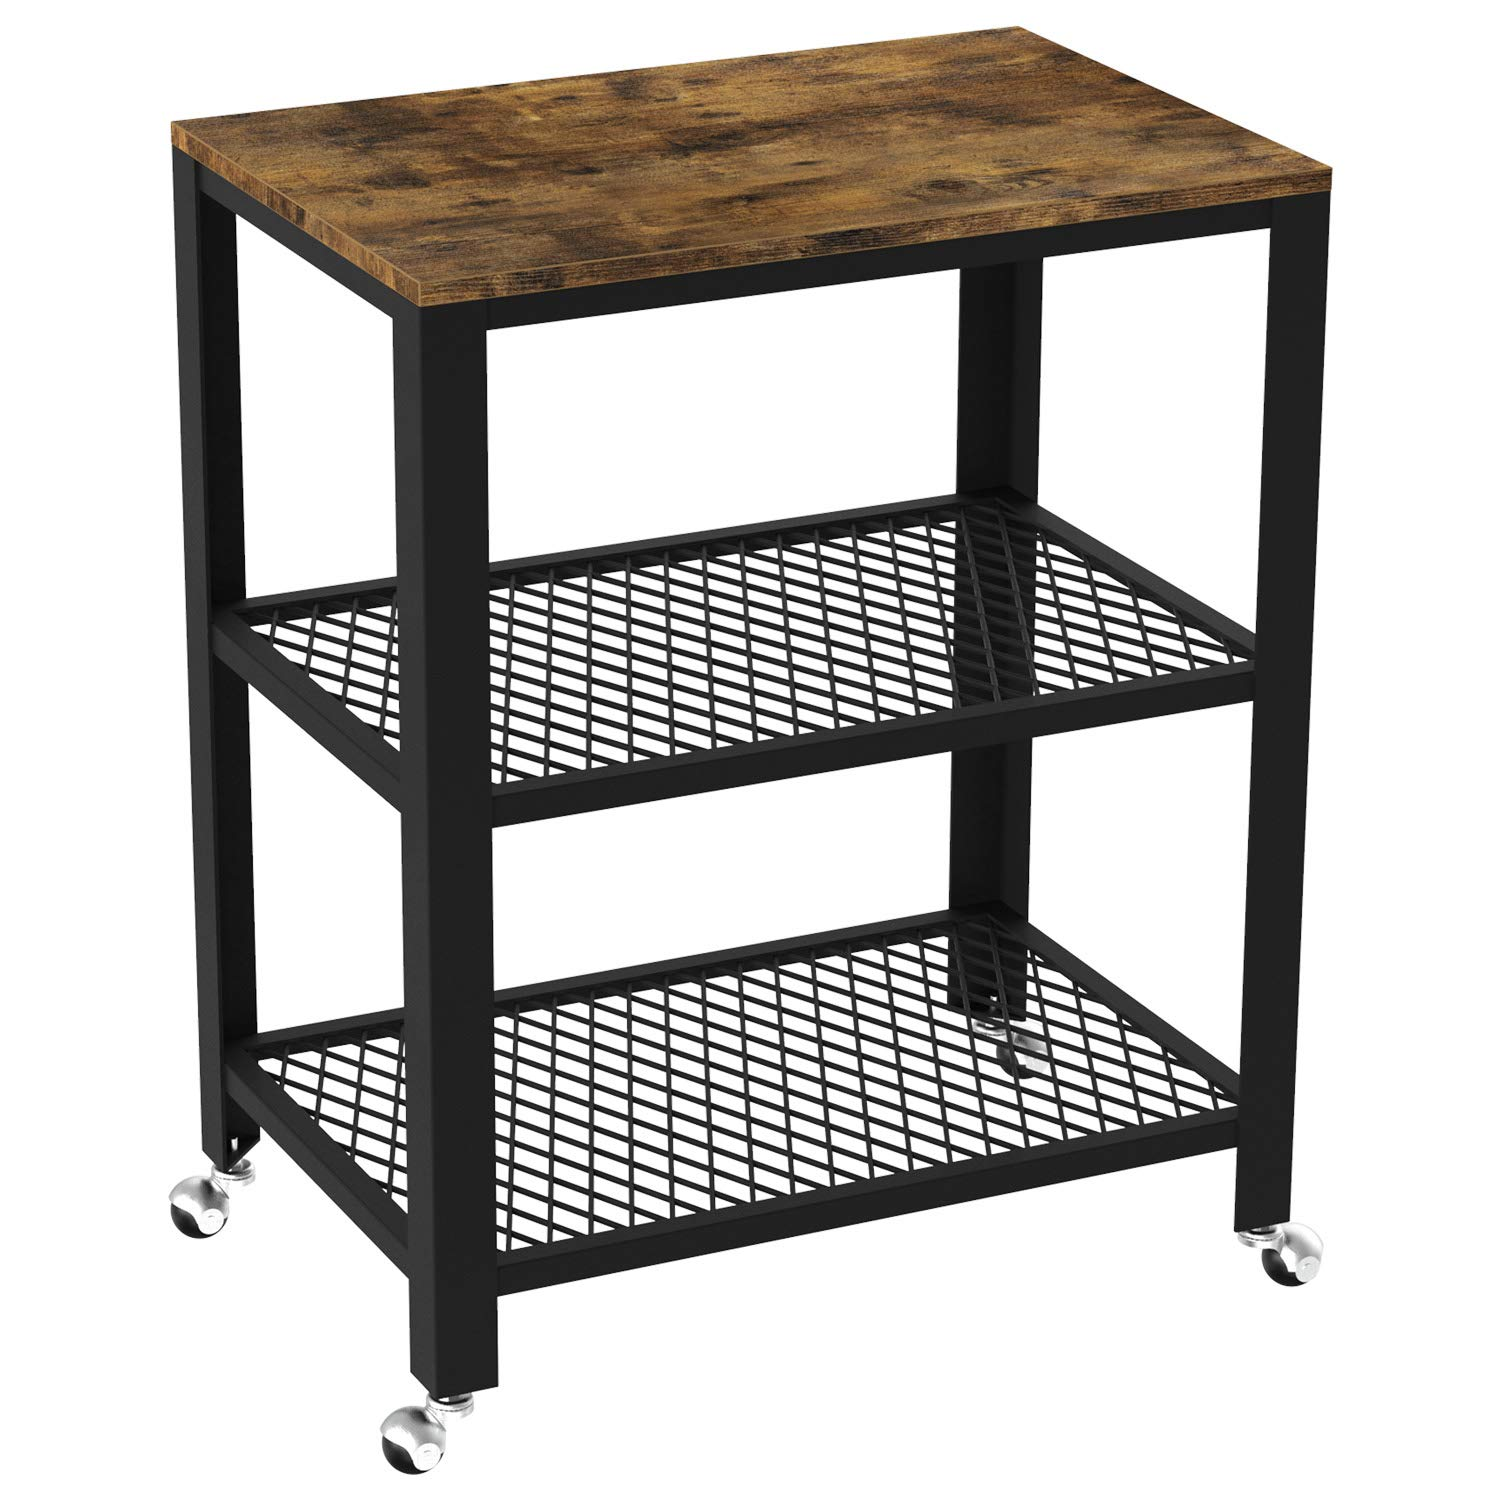 IRONCK Industrial Kitchen Cart 3-Tier, Rolling Serving Cart on Wheels with Storage, Microwave Cart for Kitchen, Wood Look Accent Furniture with Metal Frame, Vintage Brown by IRONCK